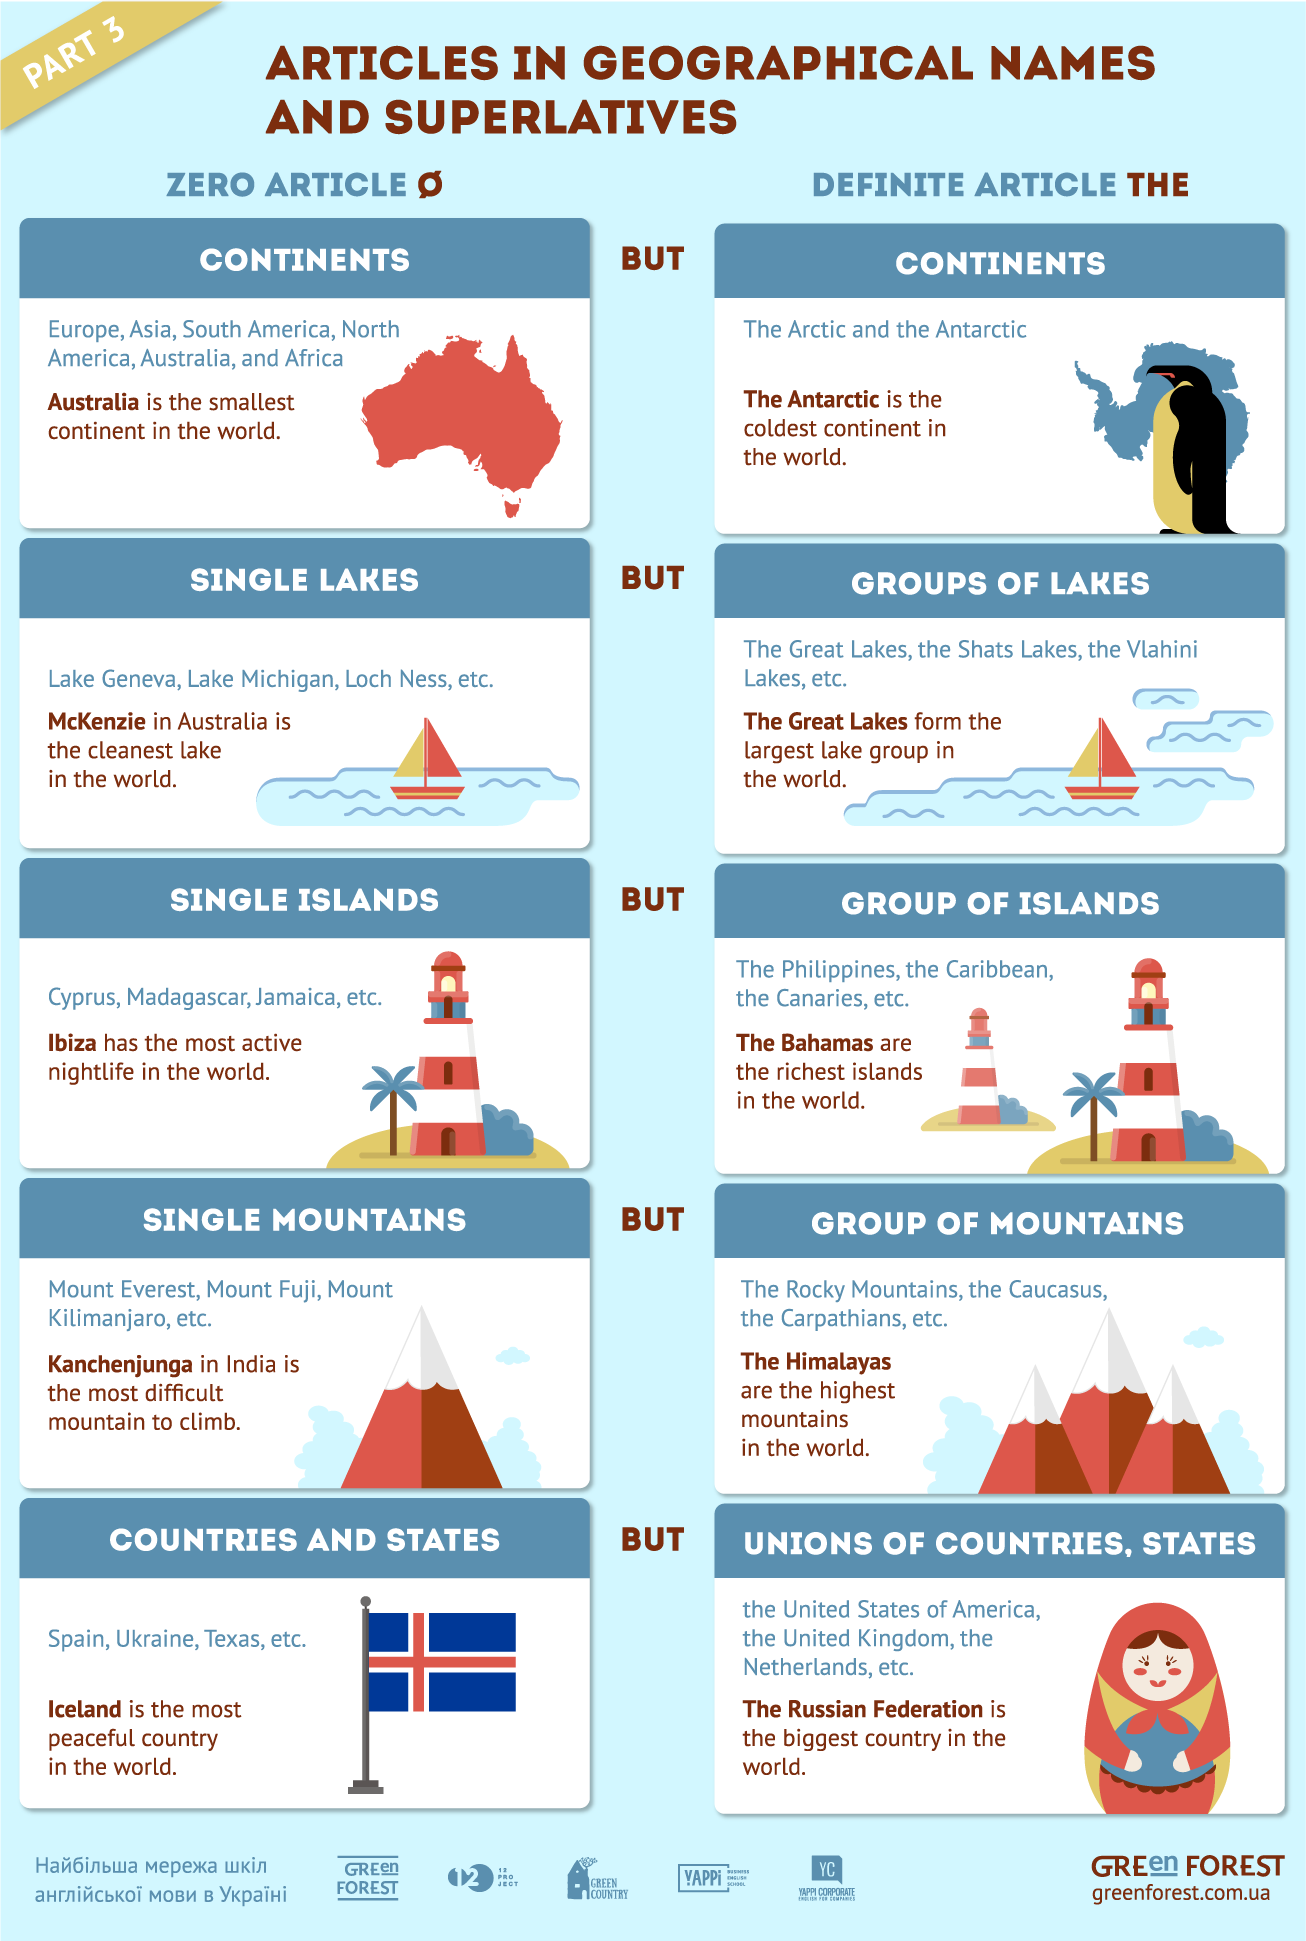 Zero Article And Definite Article The In Geographical